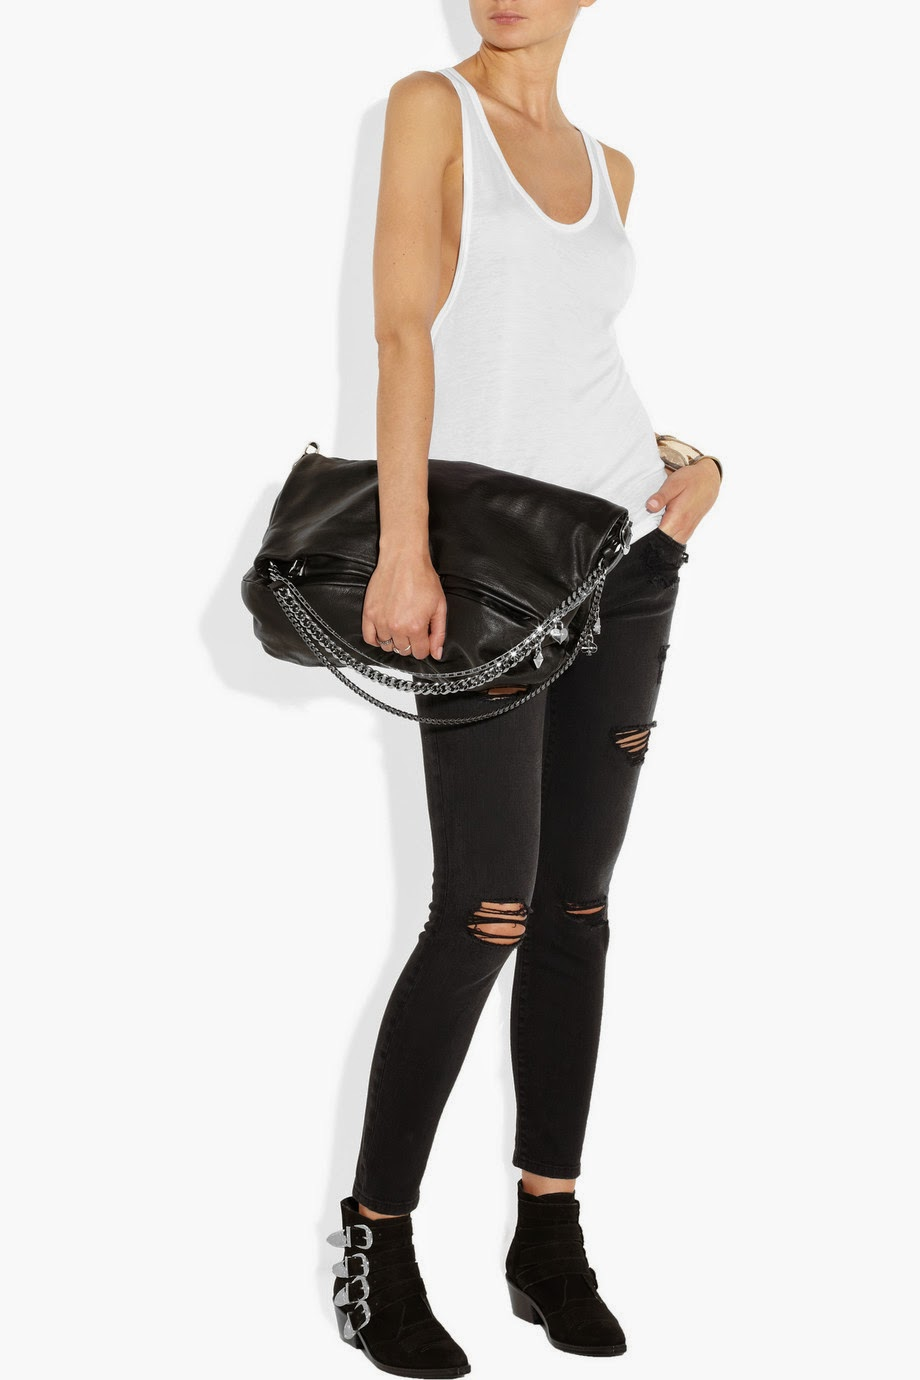 night out -  going out - outfit idea - racer back jersey tank top black ripped jeans and toga pulla boots